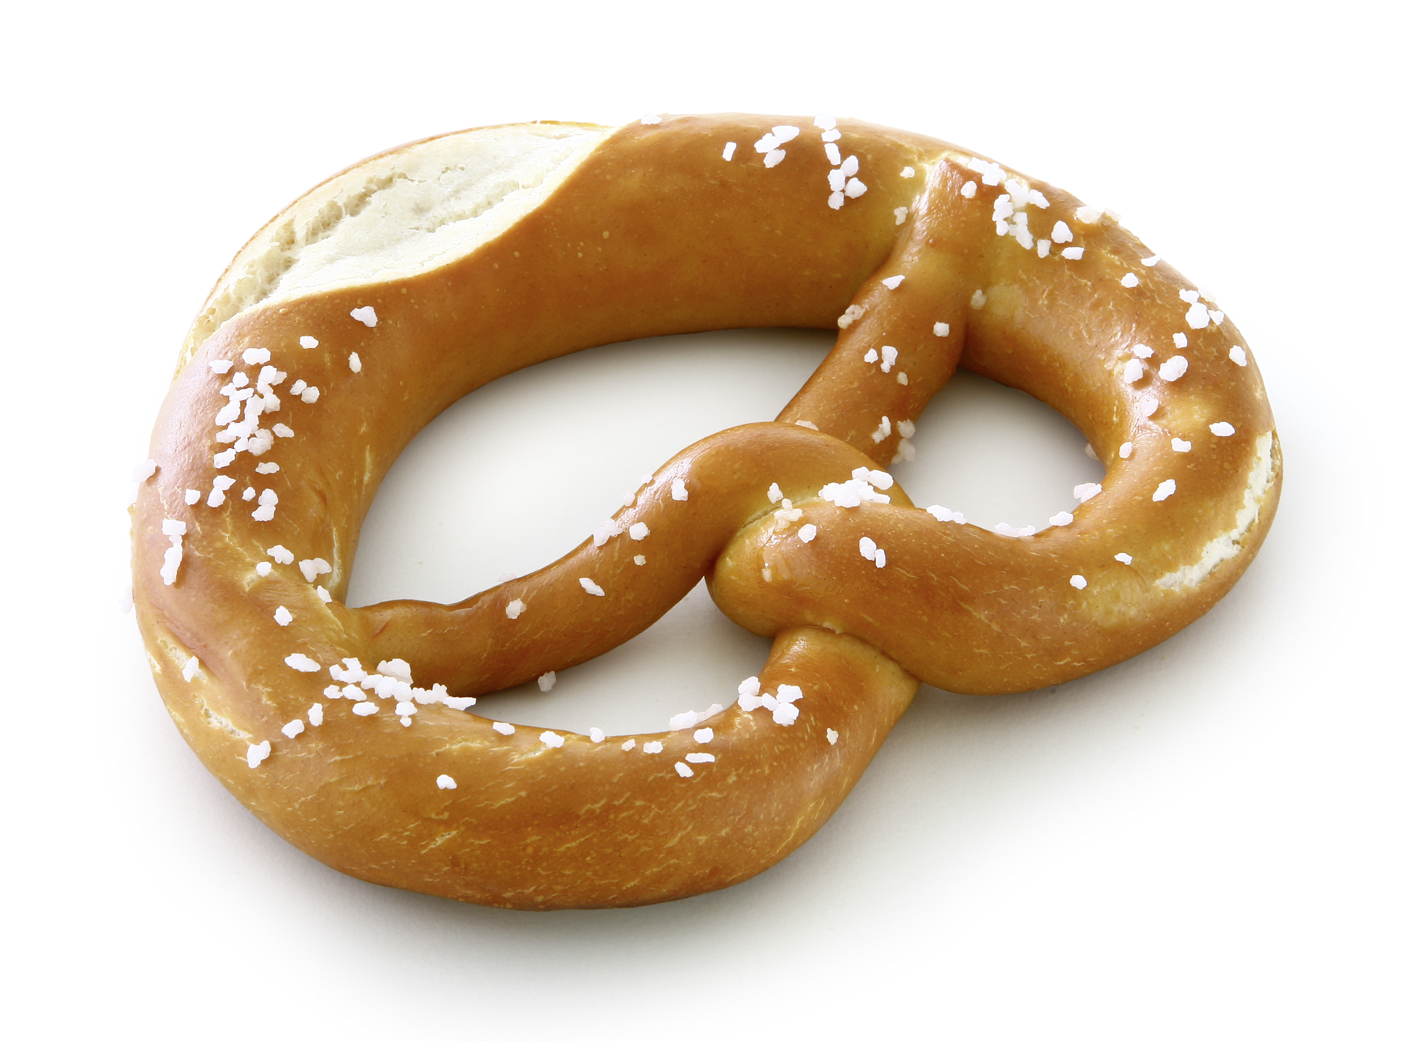 Pretzel with cut - Raw dough piece/ baked according to the Swabian style/ with separate salt for sprinkling/ with cut